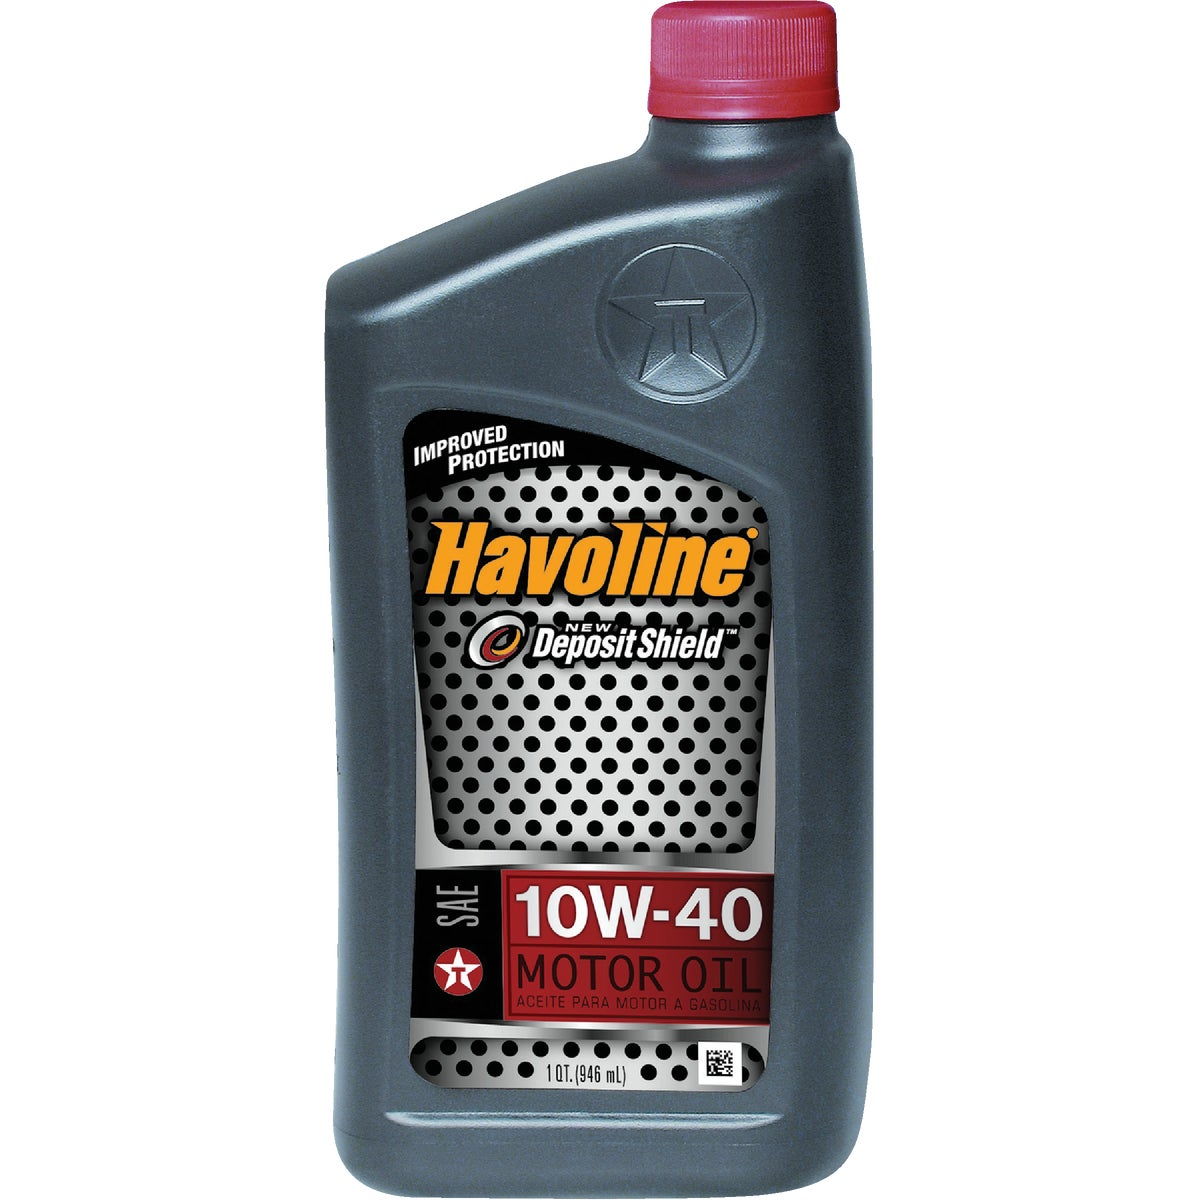 HAVOLINE 10W40 MOTOR OIL - HAVO223396 by Twinco Romax